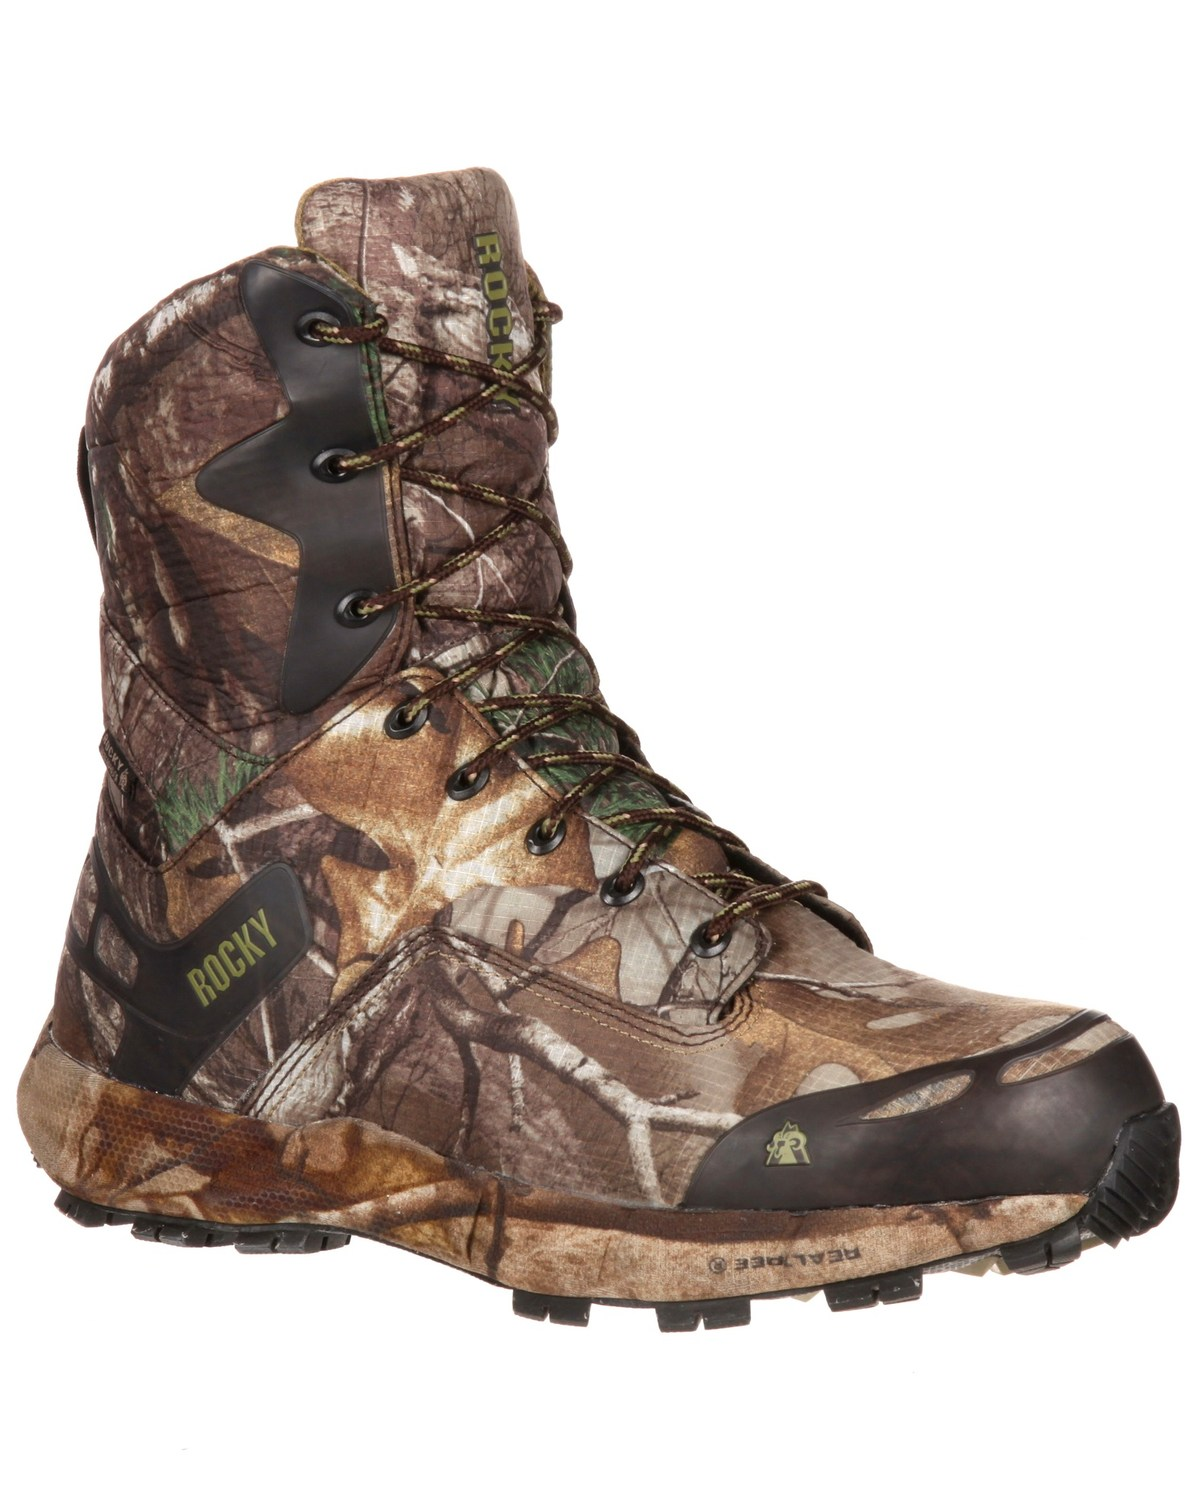 b87f6573a2a Rocky Men's Broadhead Waterproof Hunting Boots - Round Toe